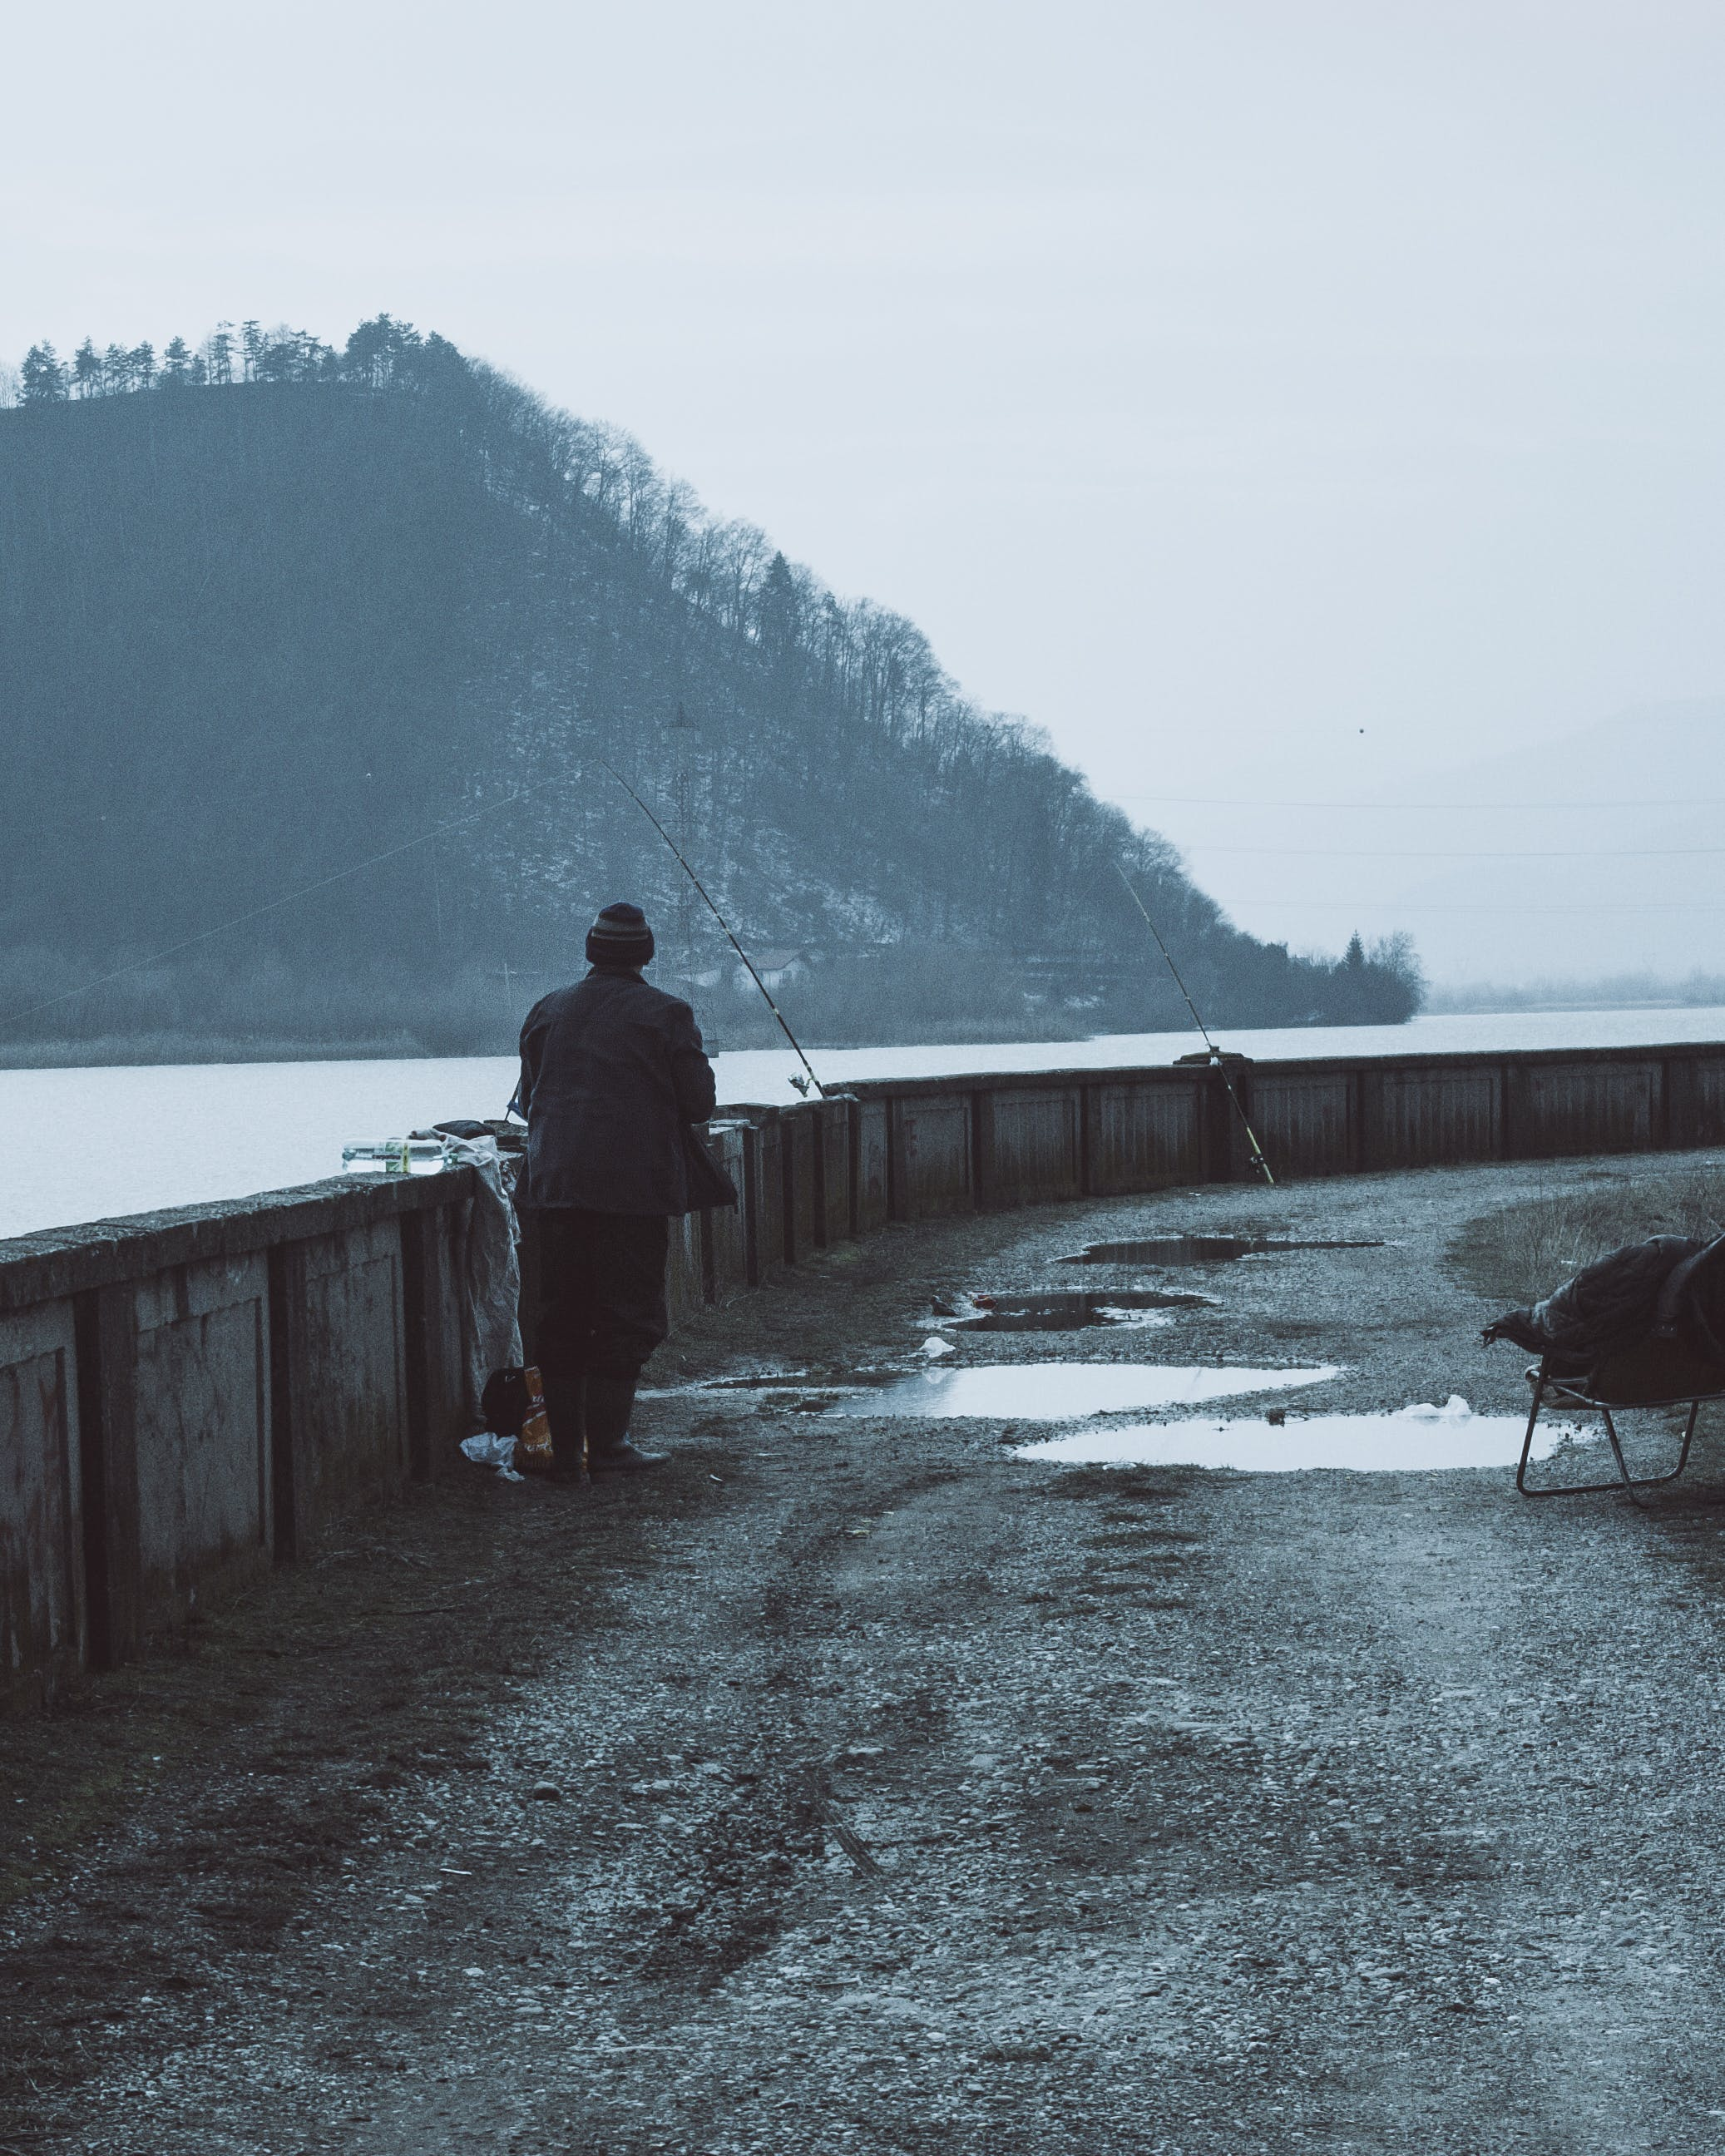 Man Wearing Brown Coat Near a Body of Water With Fishing Rods at Daytime